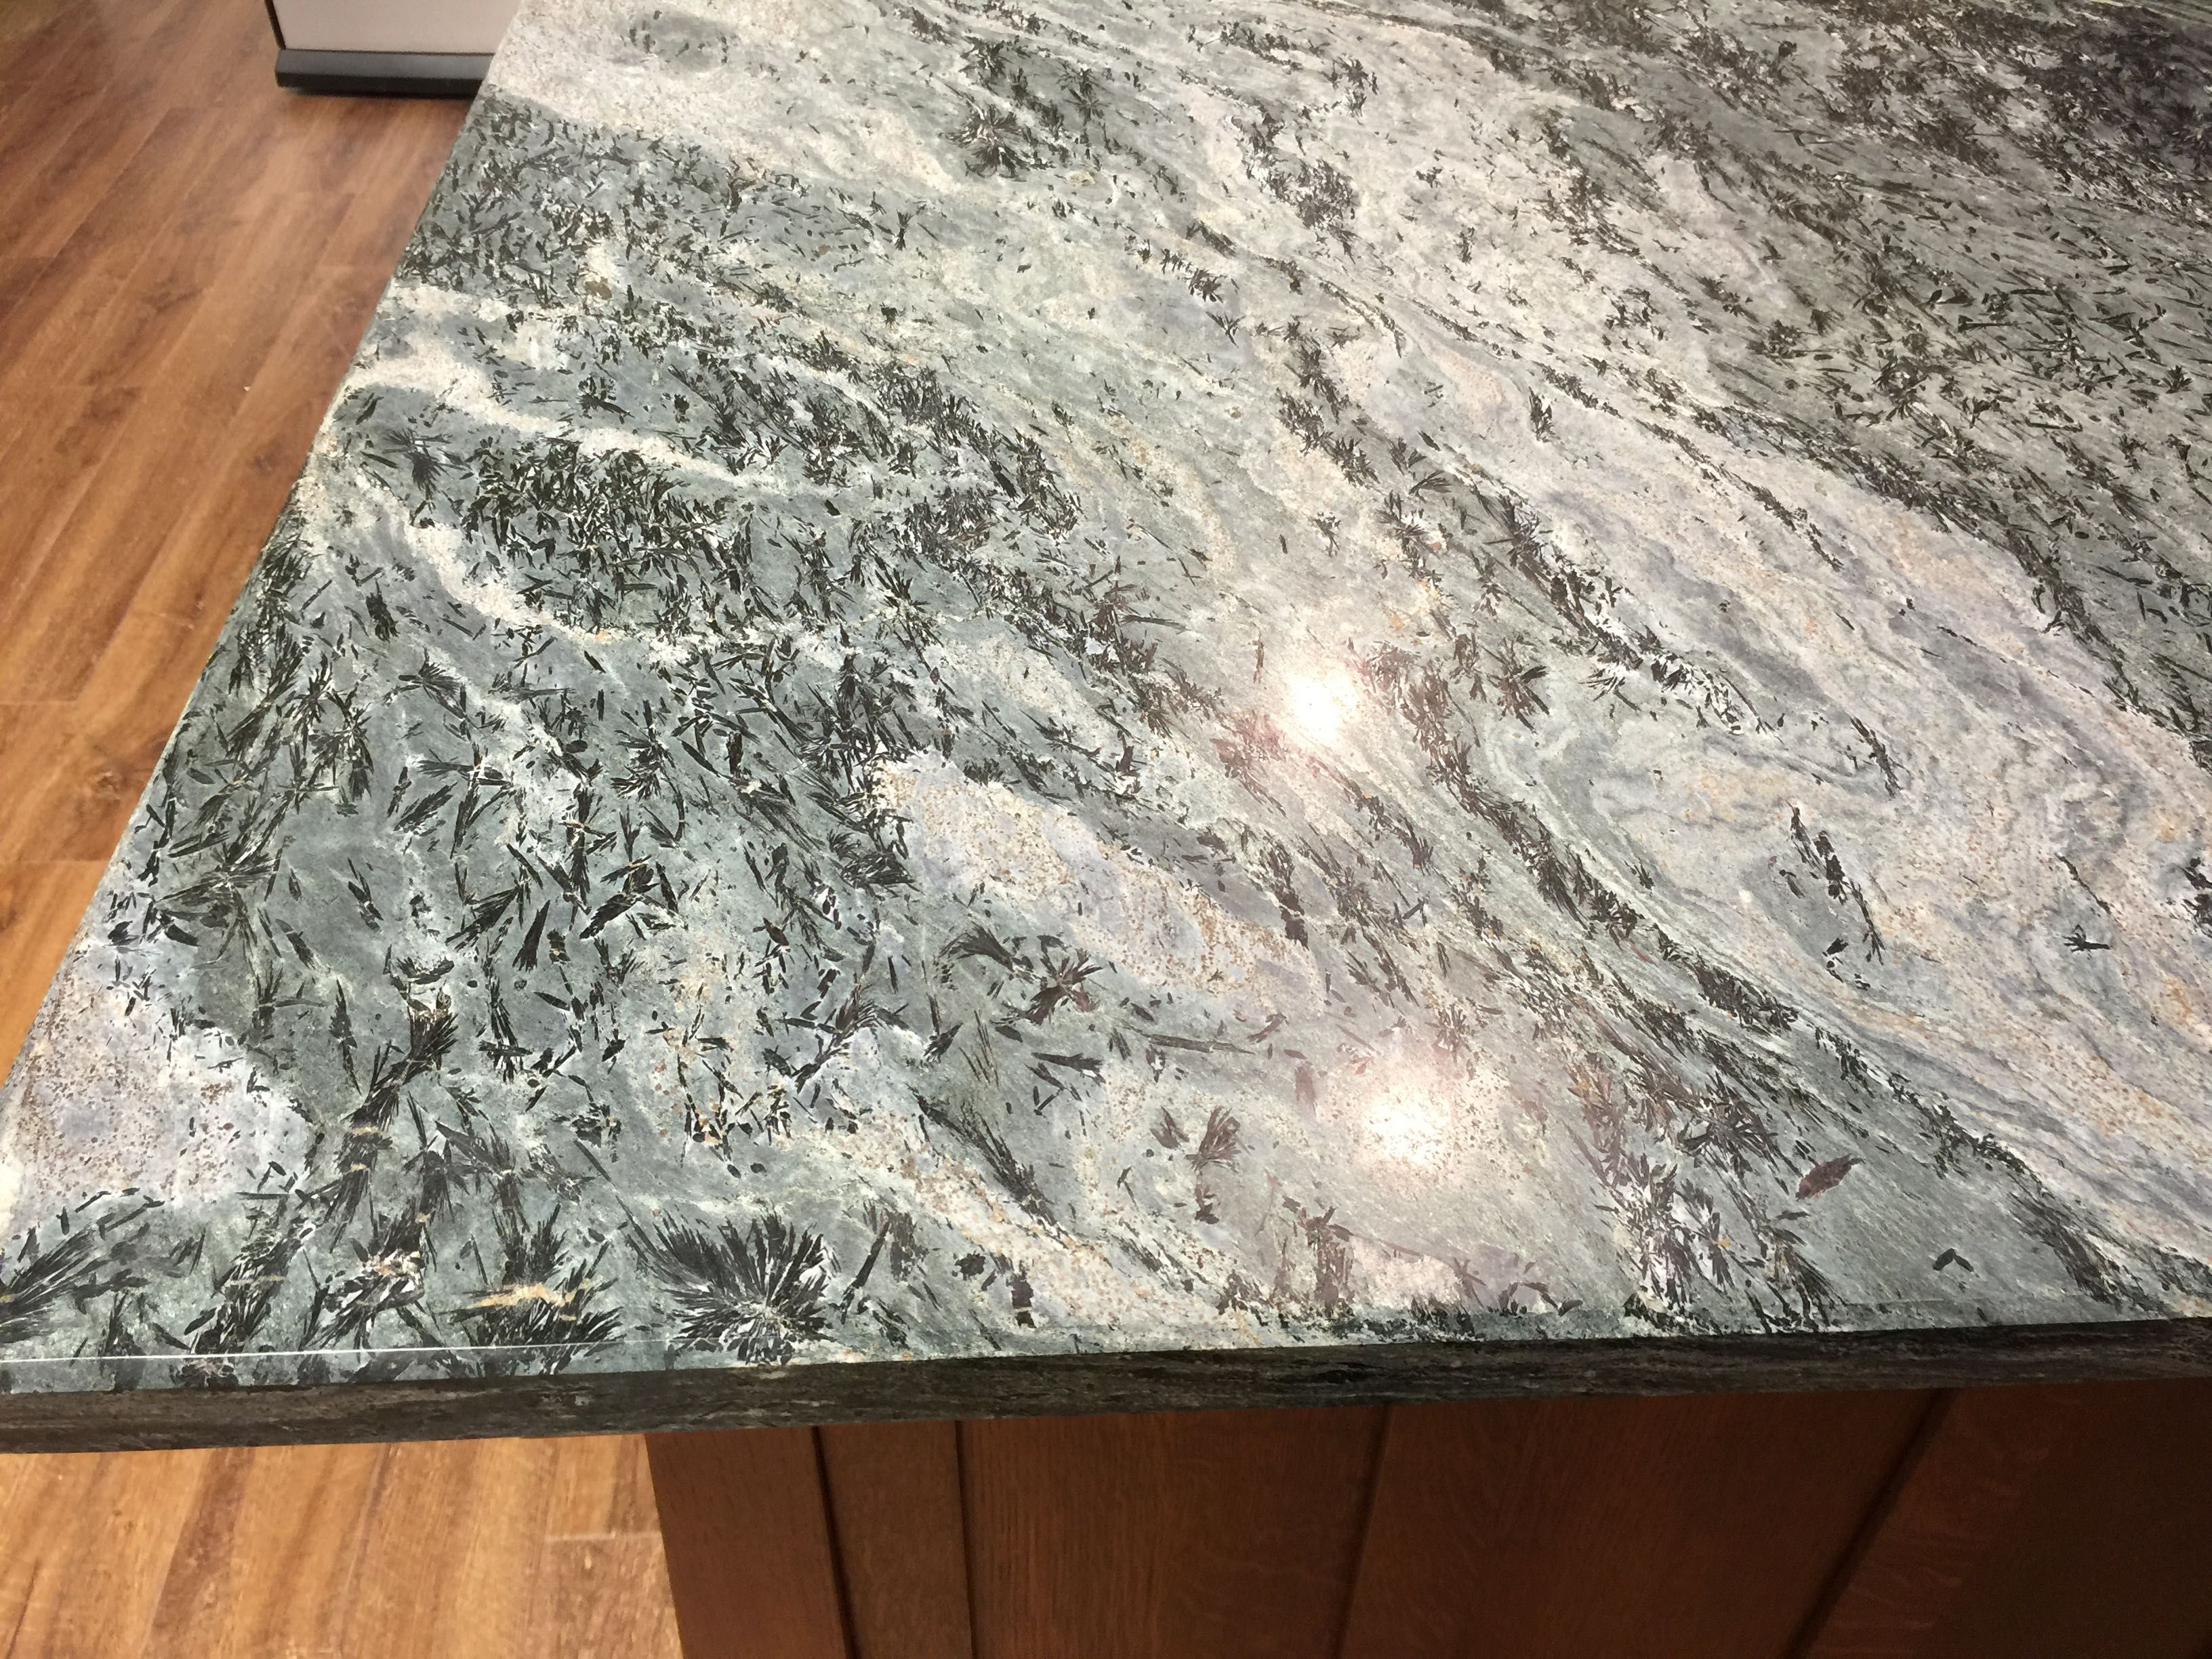 Ashfield Stone Crowsfoot Schist Countertop At Crownpoint Showroom Claremont Nh New Kitchen Granite